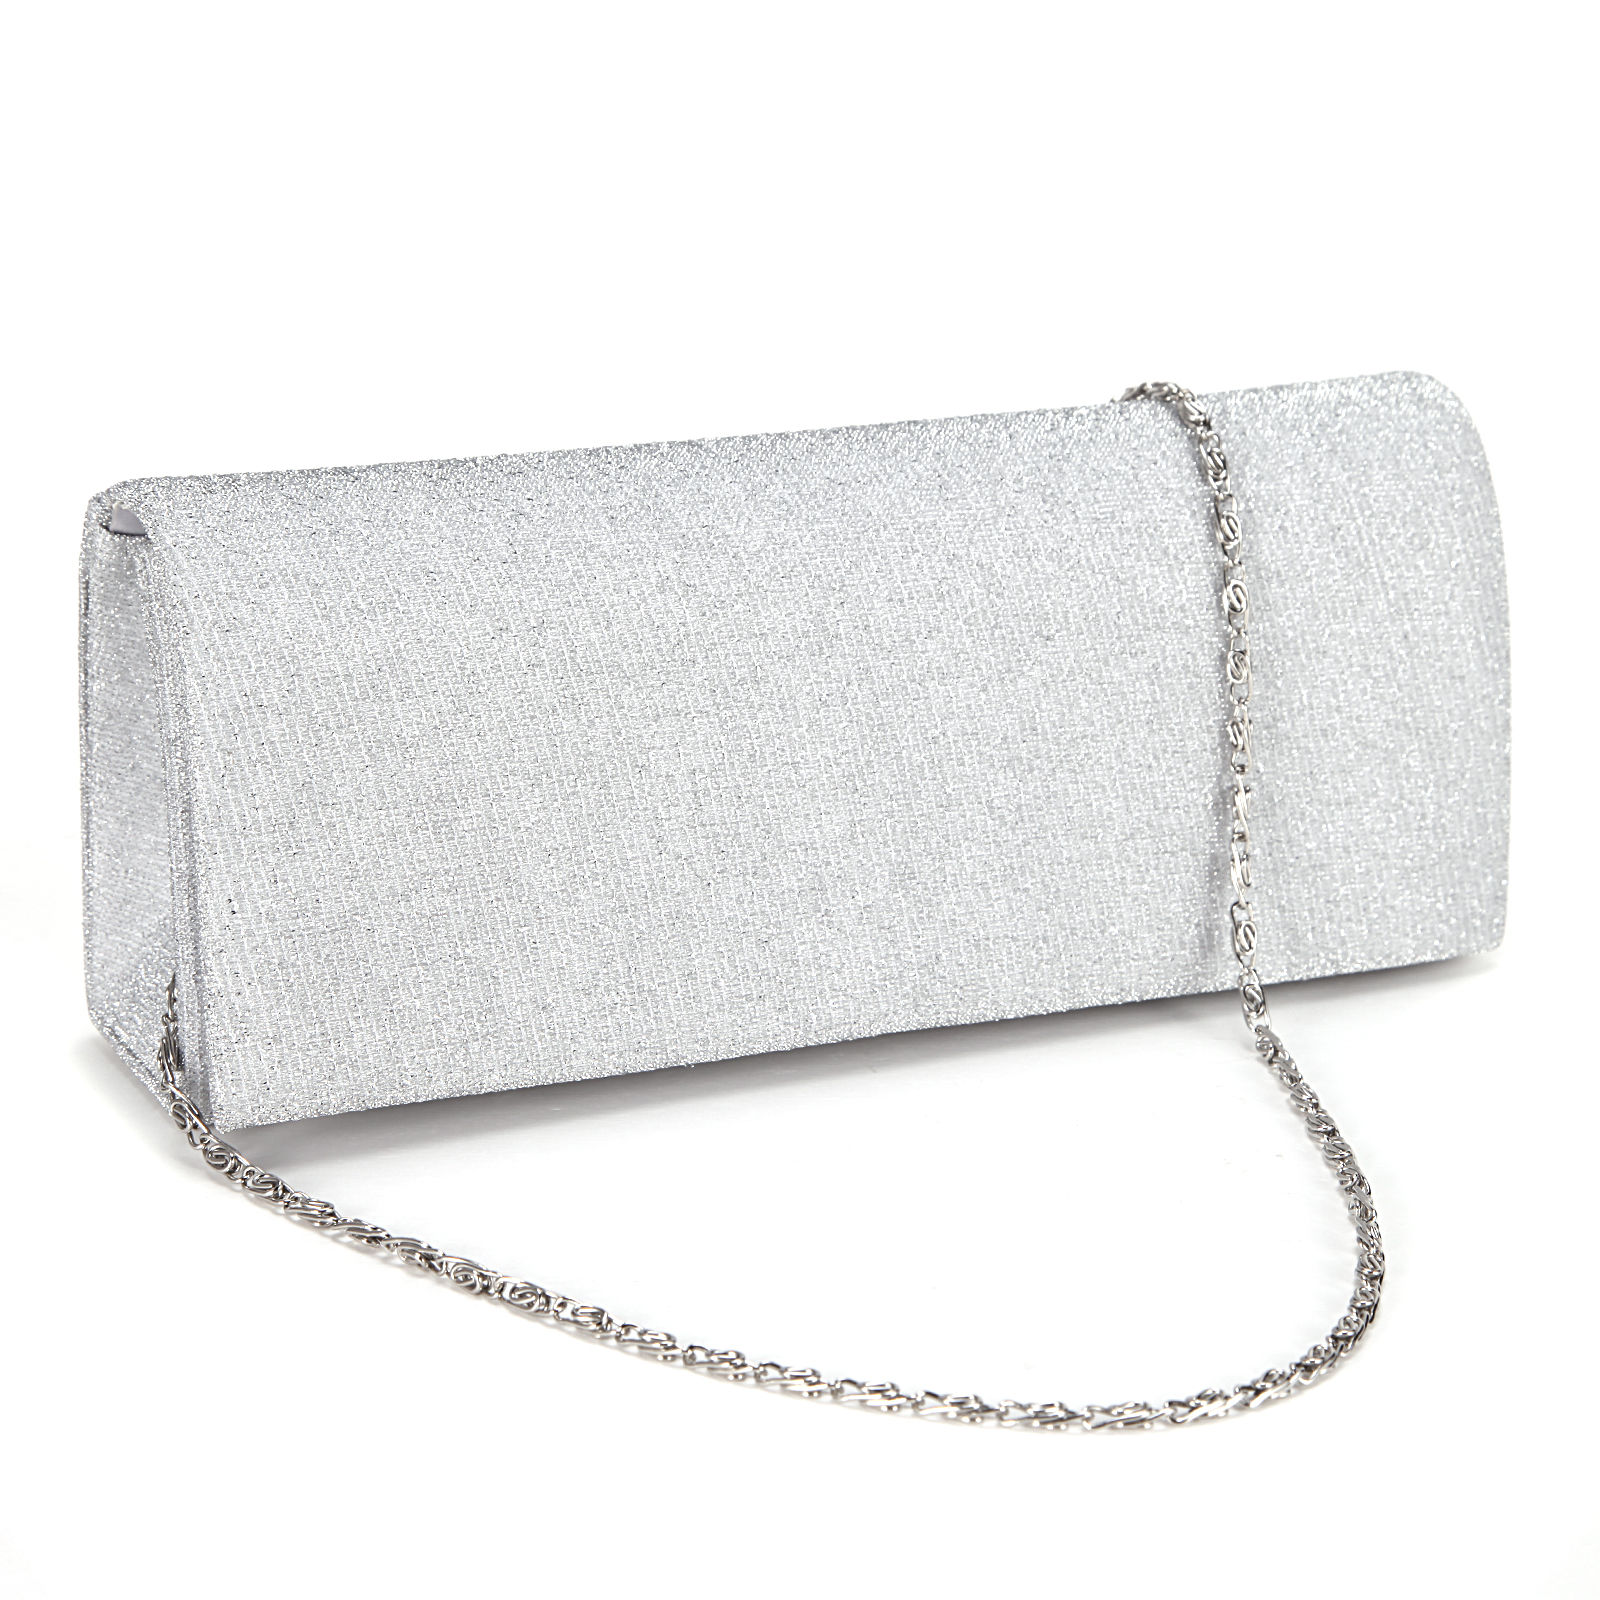 Shimmery Glitter-Tone Fine Lines Women Clutch Hand Carry Bag ...